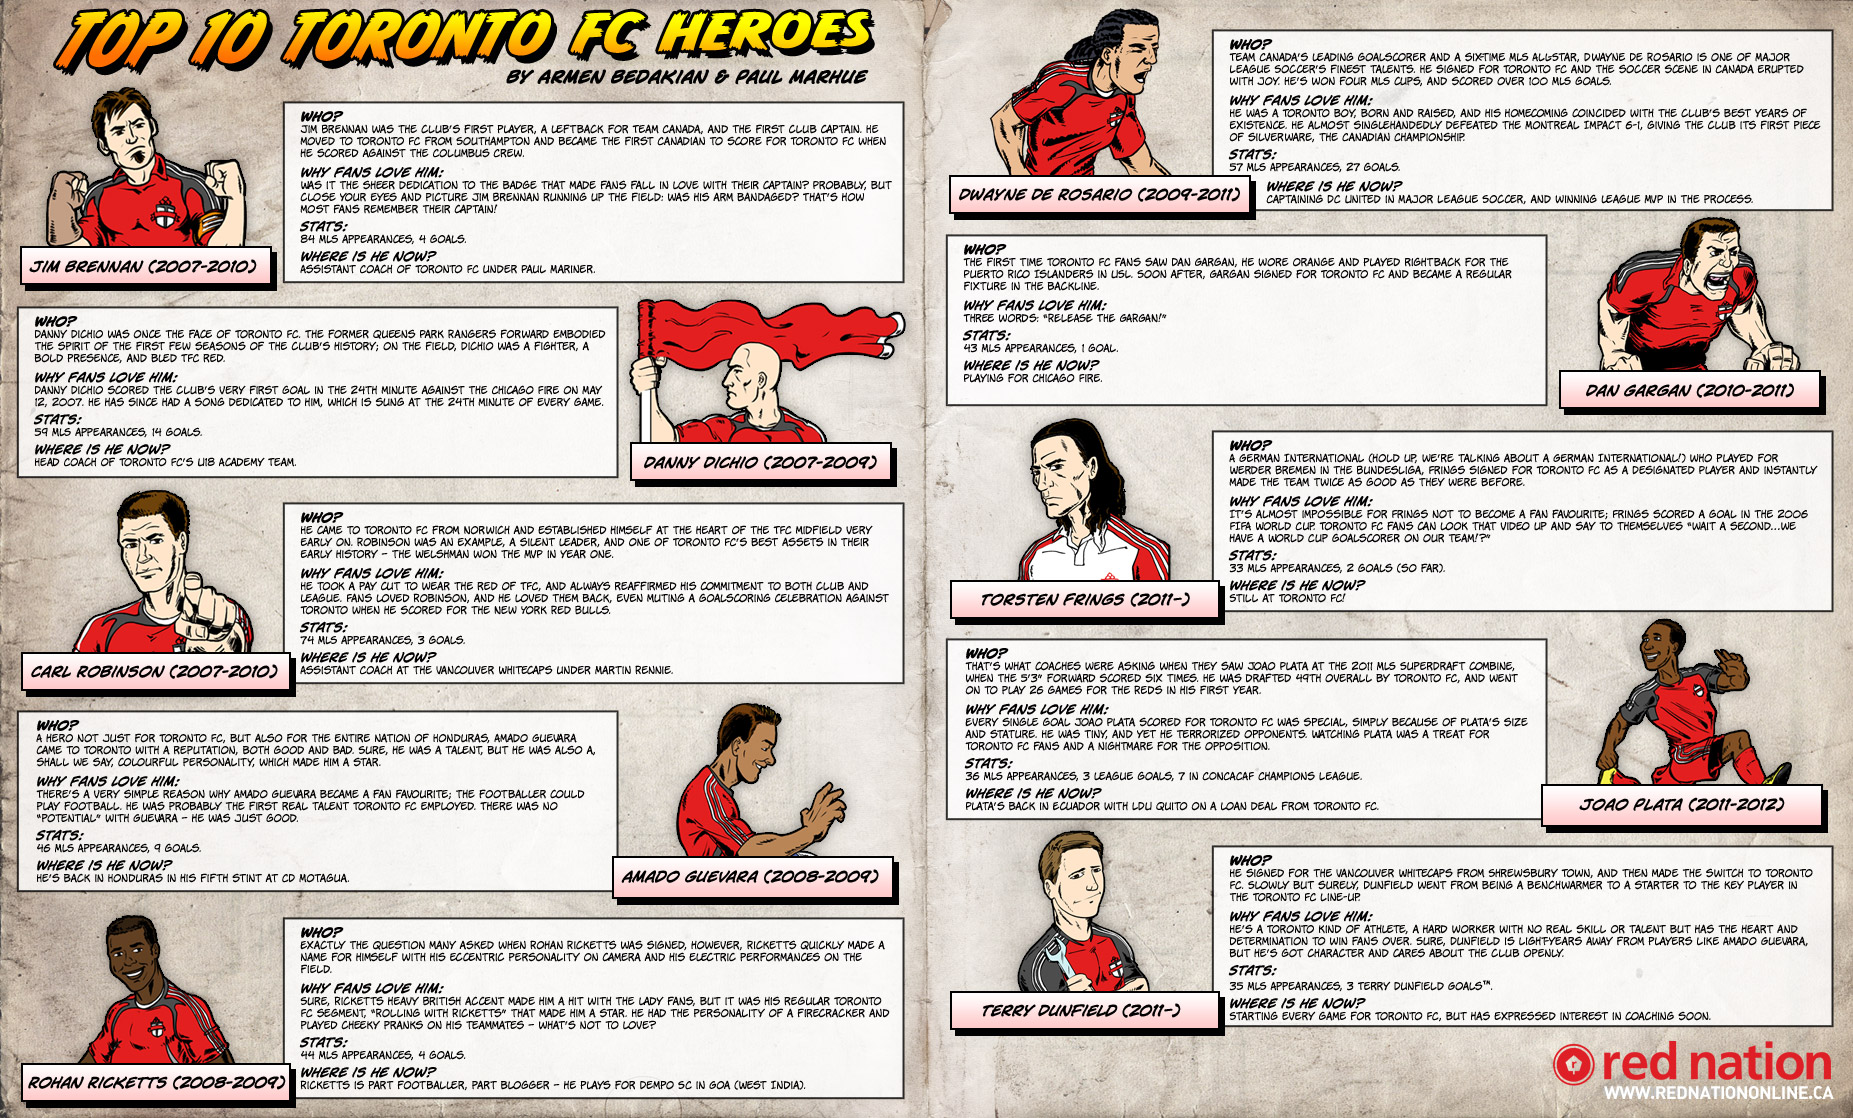 The Top 10 Toronto FC Heroes